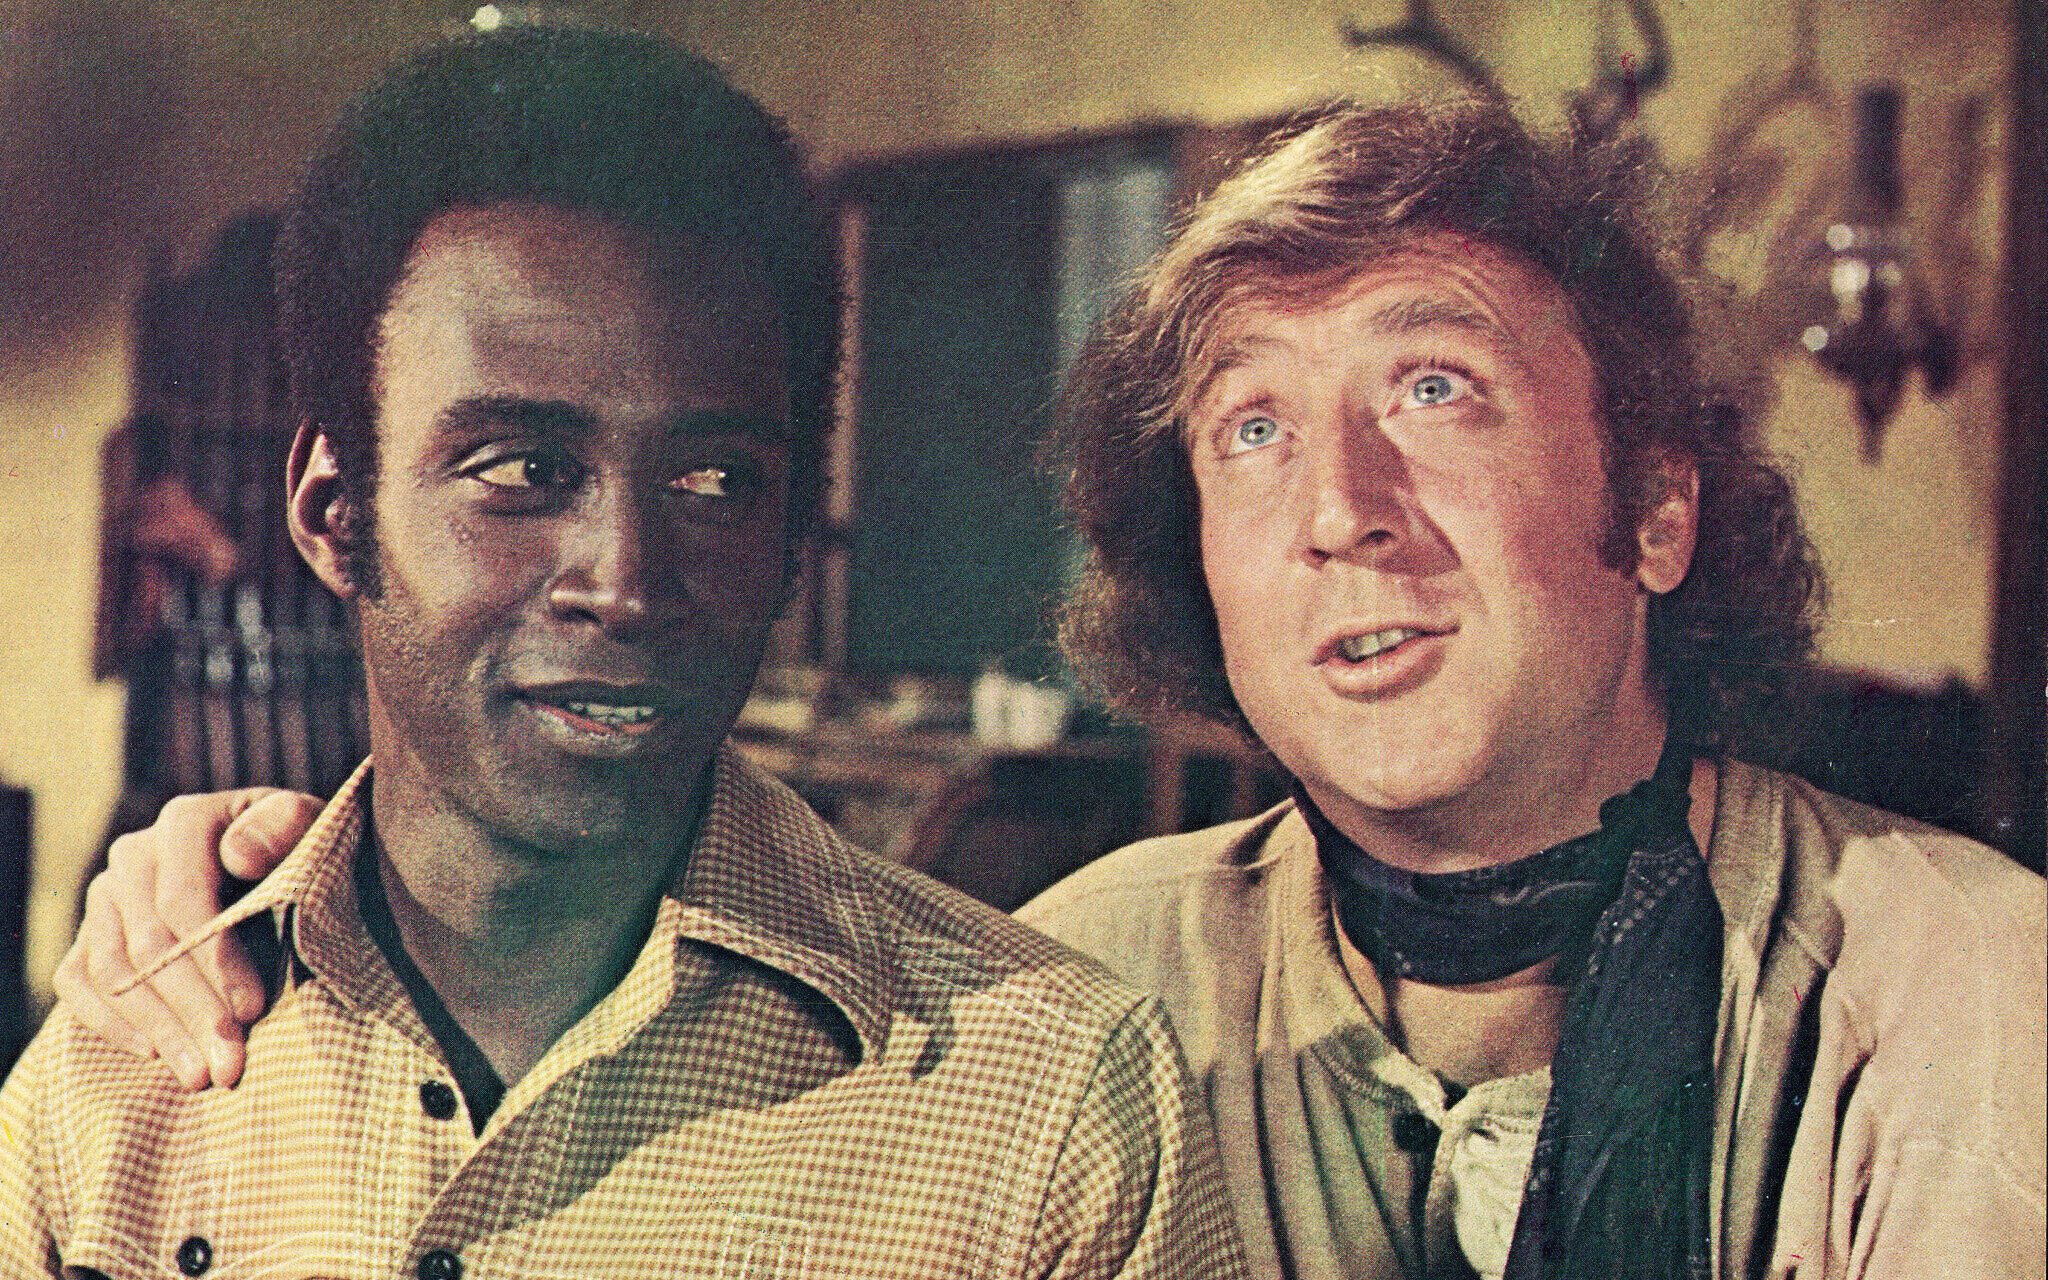 Gene Wilder and Cleavon Little on the set of 'Blazing Saddles'